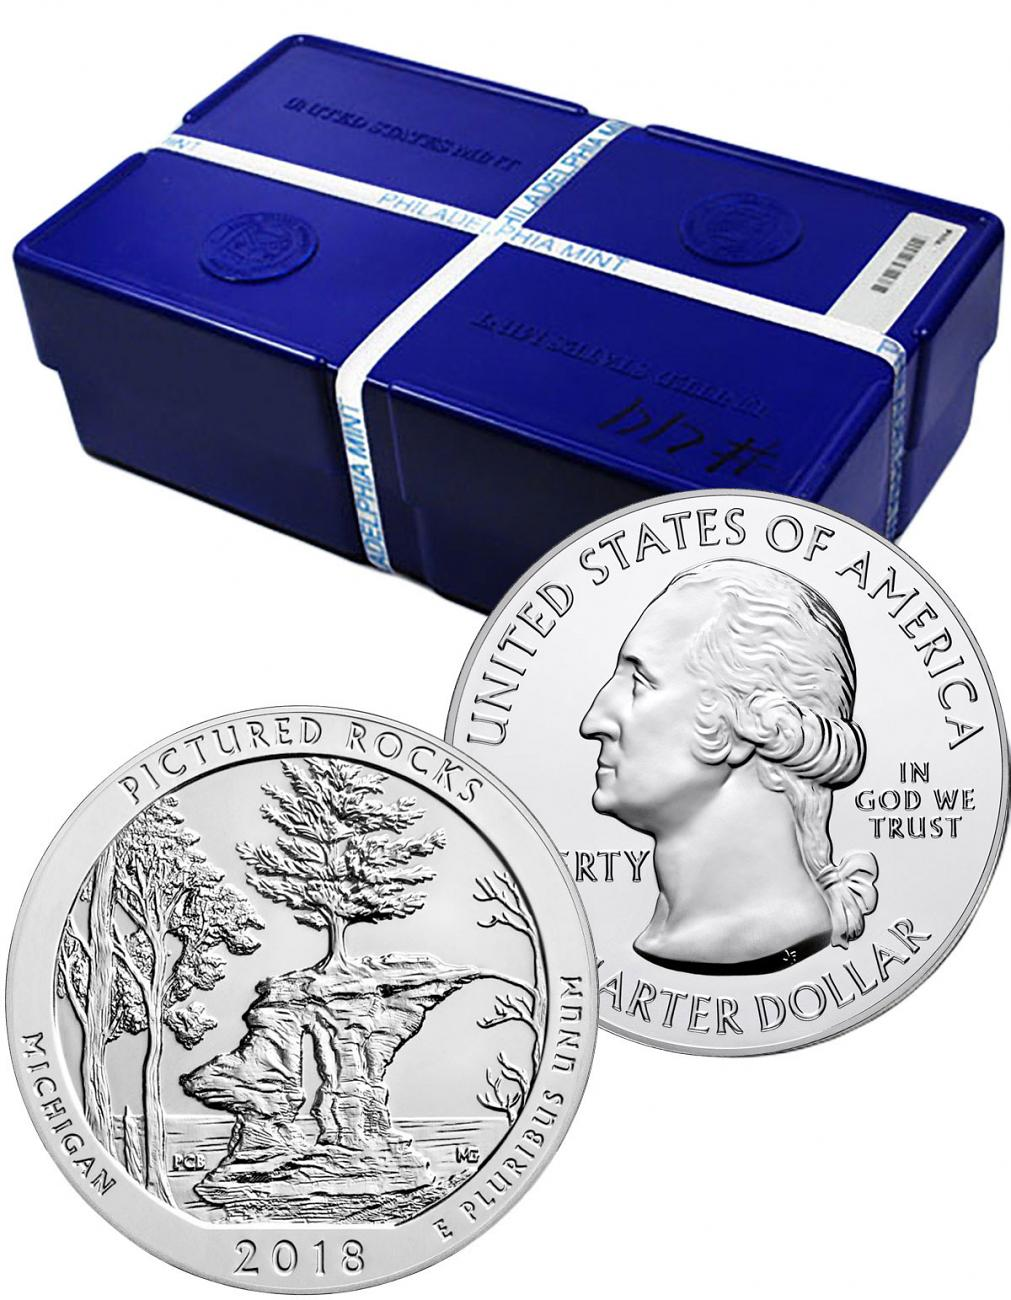 Monster Box of 100 - 2018 Pictured Rocks 5 oz. Silver America the Beautiful Coins GEM BU